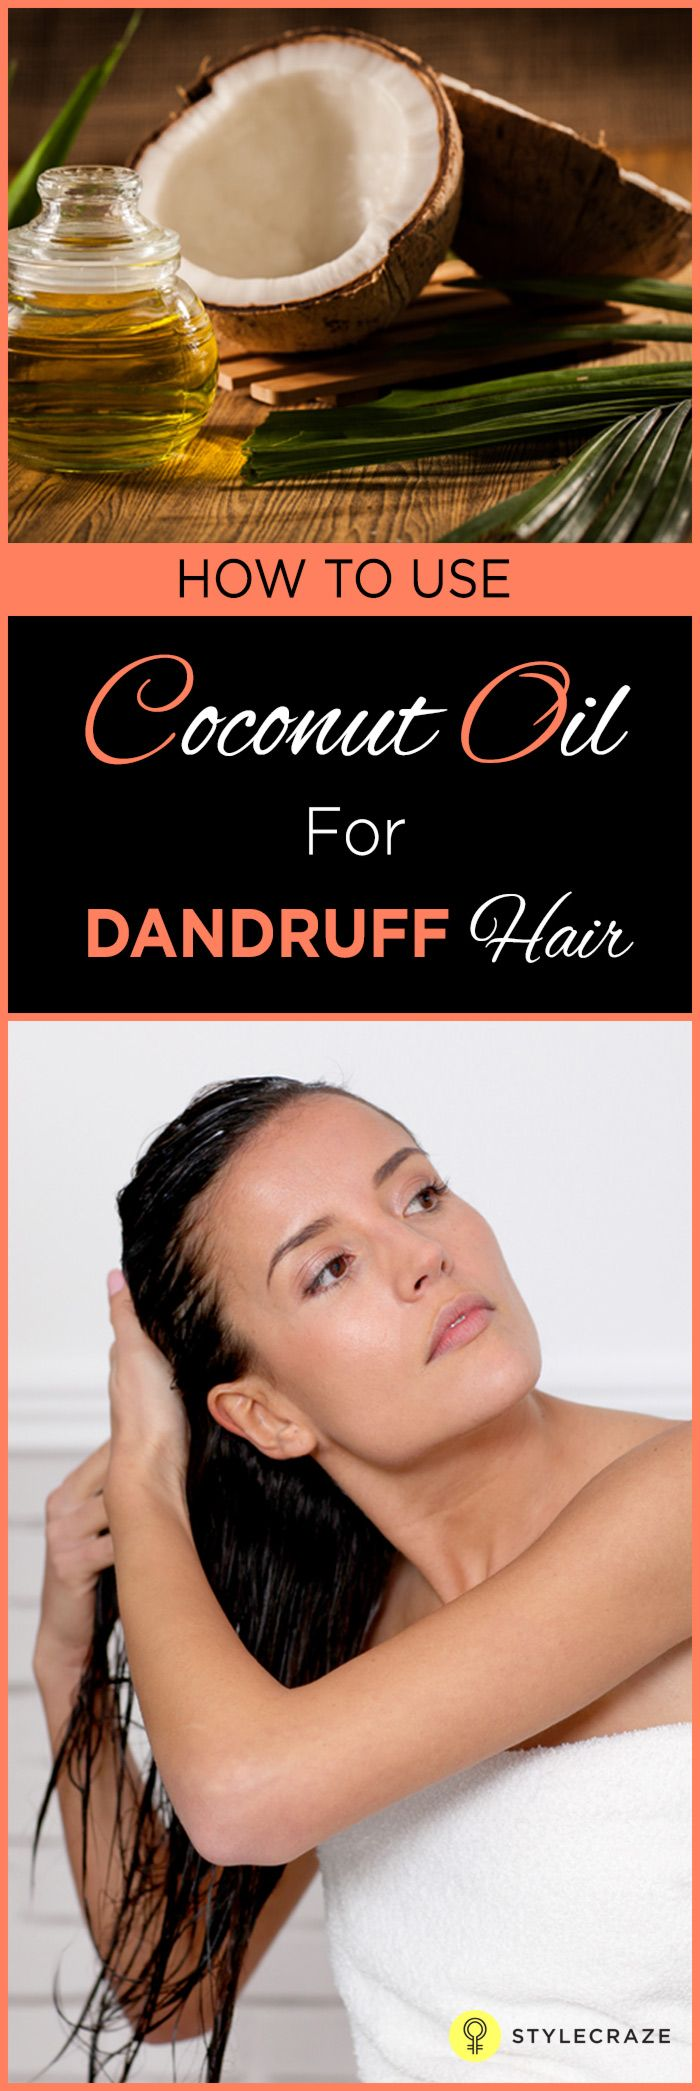 Coconut oil contains good nutritious properties. It has anti fungal and antibacterial properties which helps to remove dandruff completely from your hair .